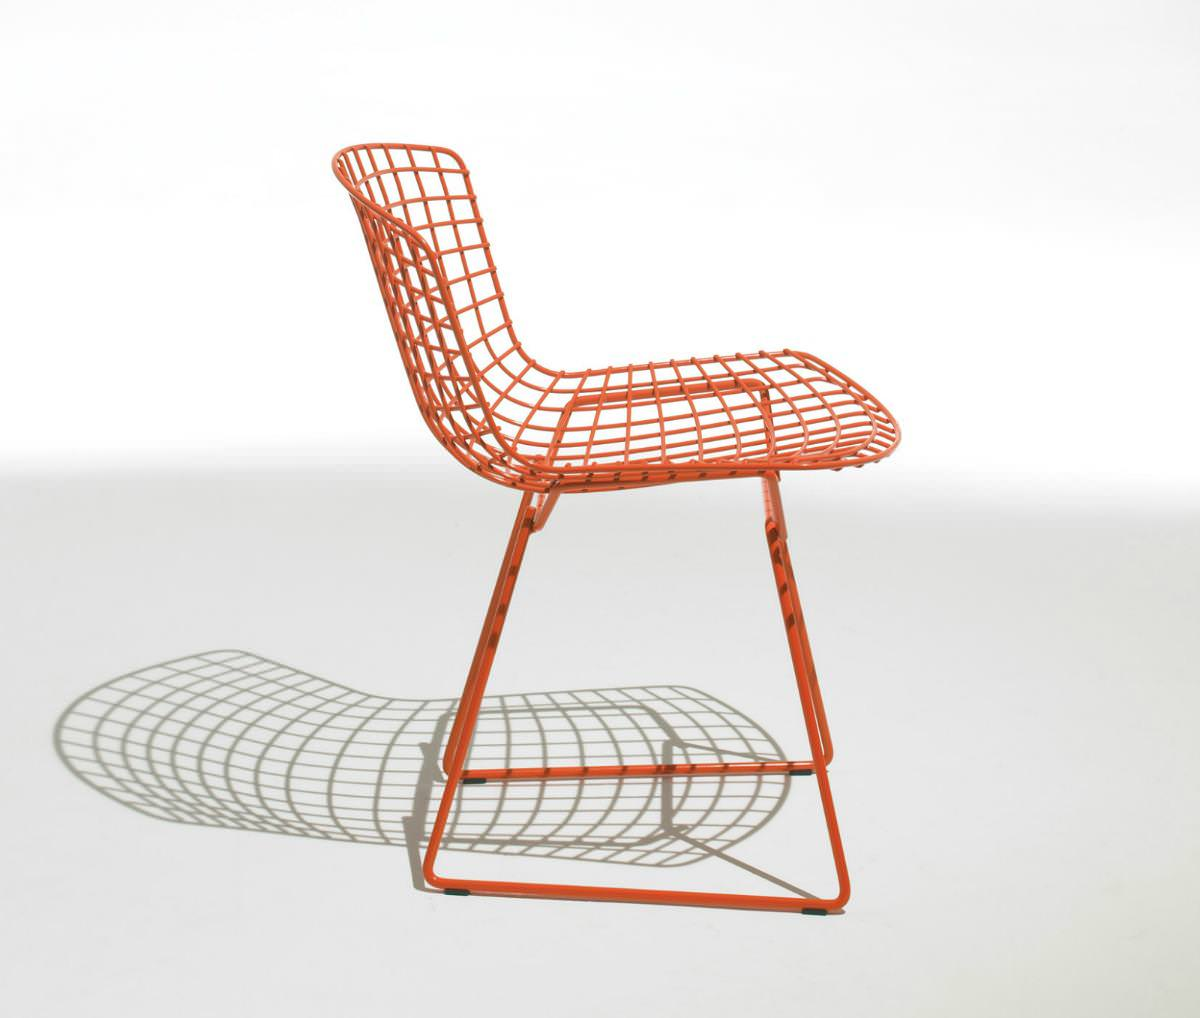 Image of: Bertoia Chair Knock Off